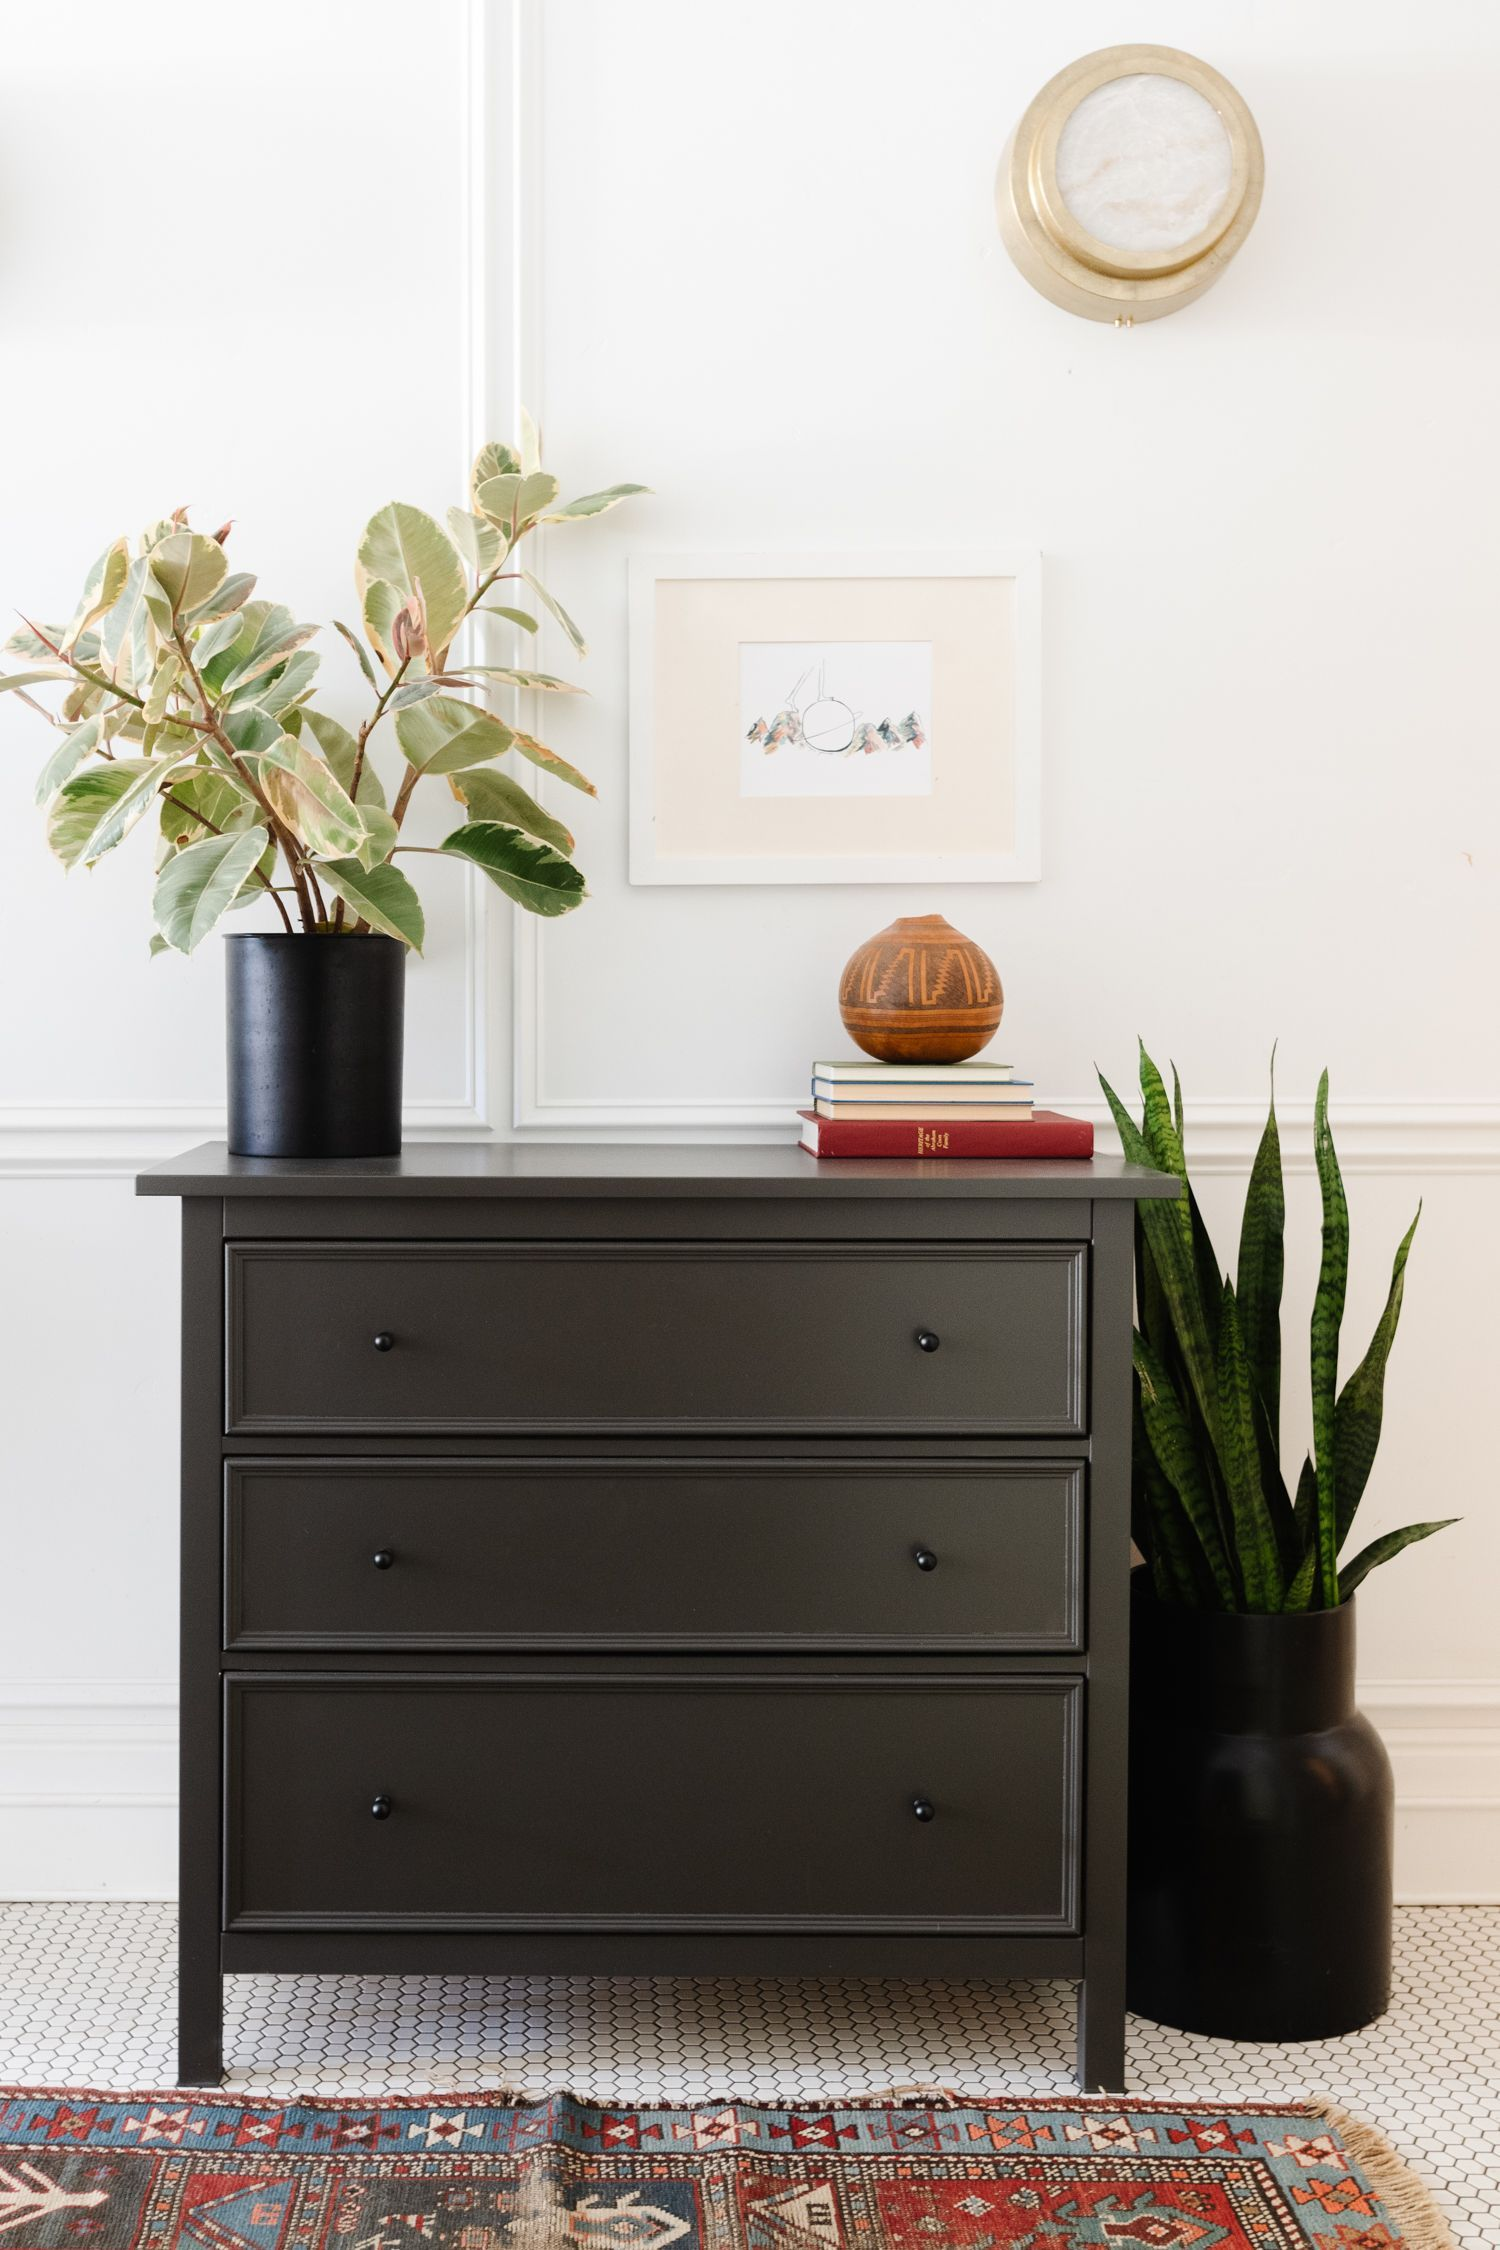 Sherwin Williams 2021 Color Of The Year Is Trending Paint Colors 2021 Paint Color Trends Trending Decor [ 2250 x 1500 Pixel ]